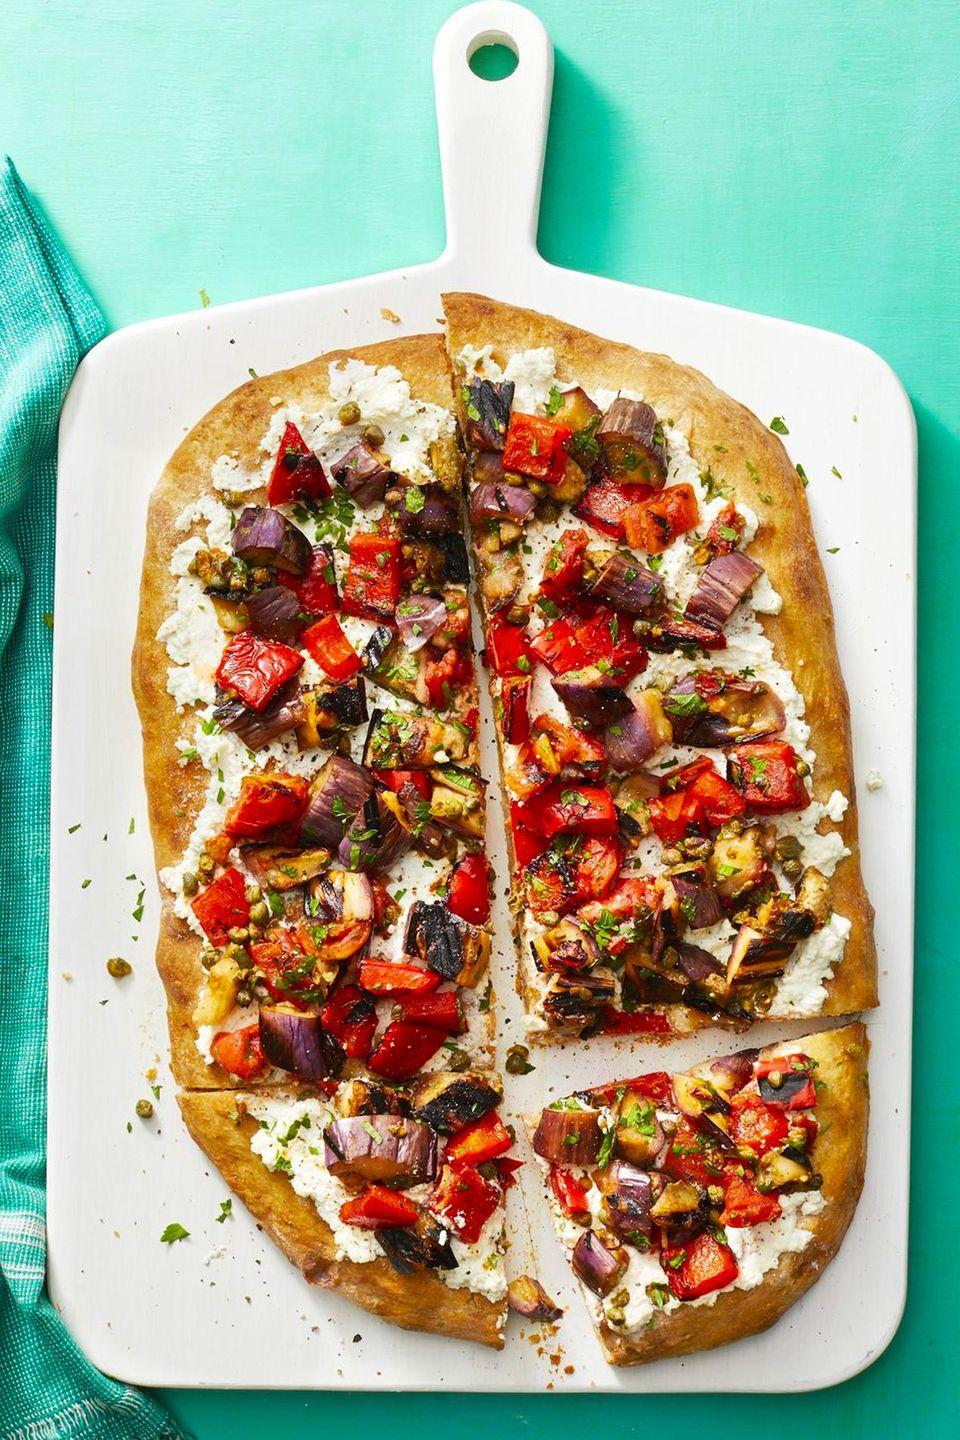 """<p>Combine capers and peppers for this sweet-and-sour pizza full of veggies.</p><p><a href=""""https://www.womansday.com/food-recipes/food-drinks/a22482763/caponata-flatbread-recipe/"""" rel=""""nofollow noopener"""" target=""""_blank"""" data-ylk=""""slk:Get the Caponata Flatbread recipe."""" class=""""link rapid-noclick-resp""""><em>Get the Caponata Flatbread recipe.</em></a></p>"""